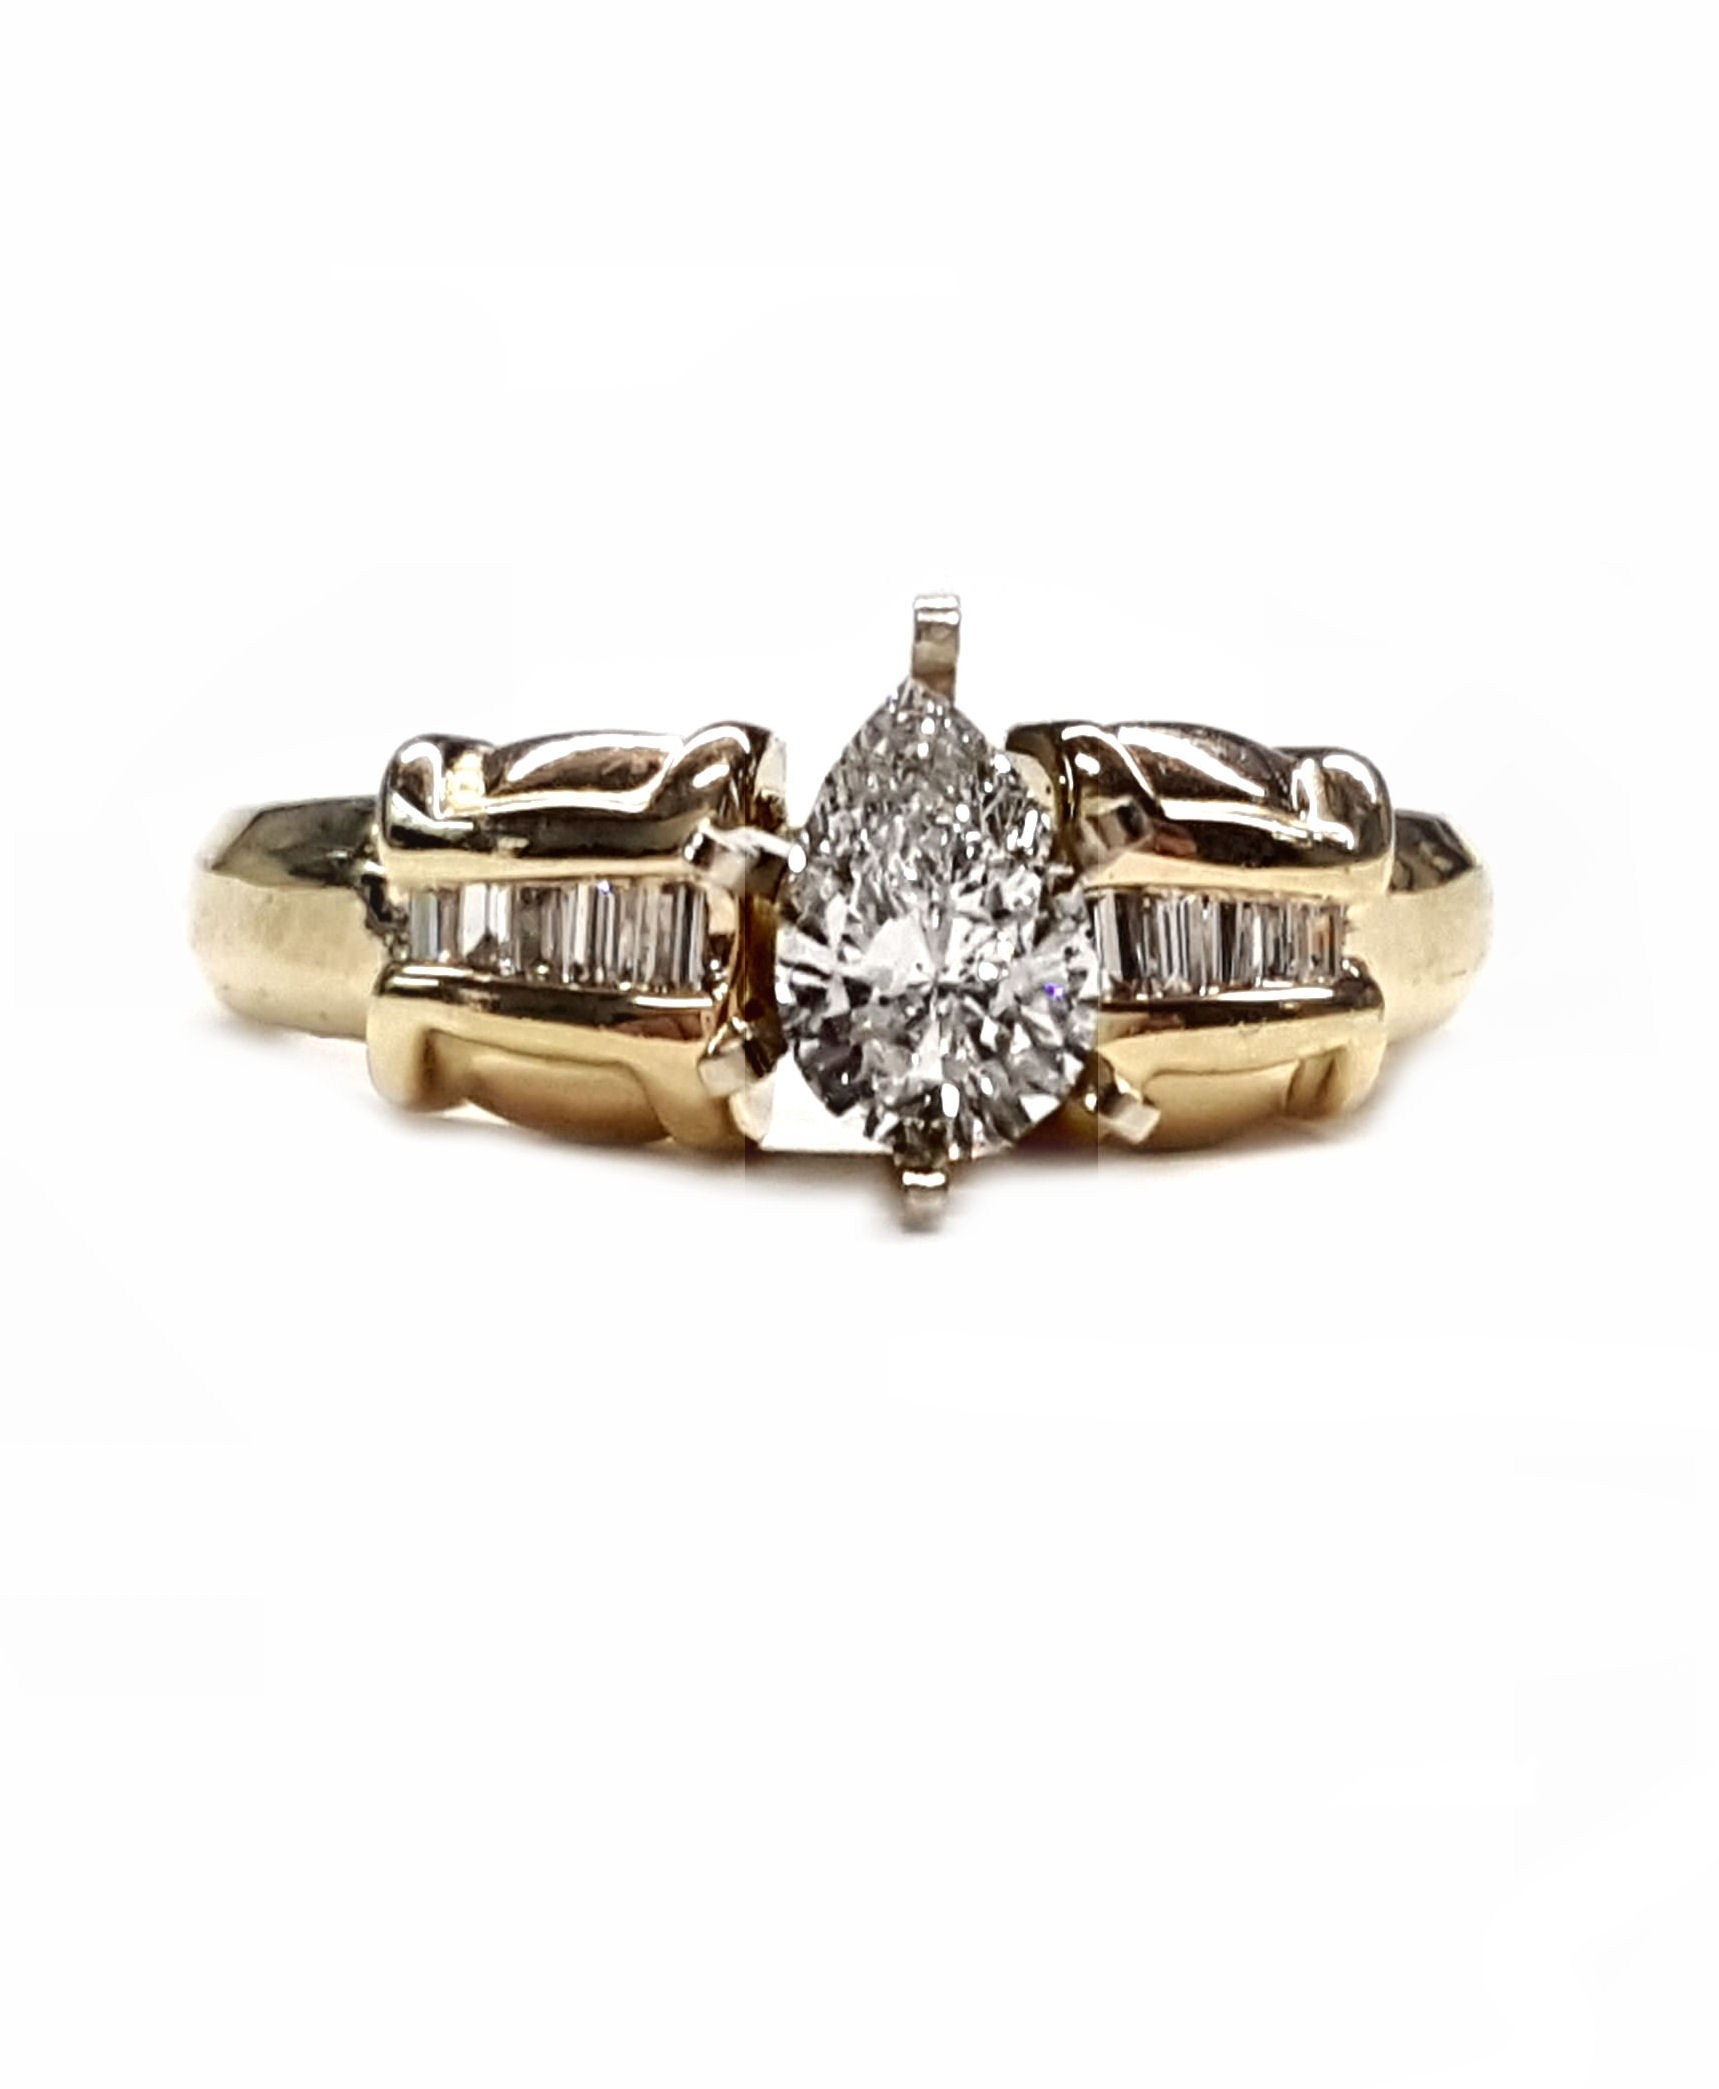 91pt. Pear Shape Diamond Engagement Ring w/ Baguette Dia. Ring